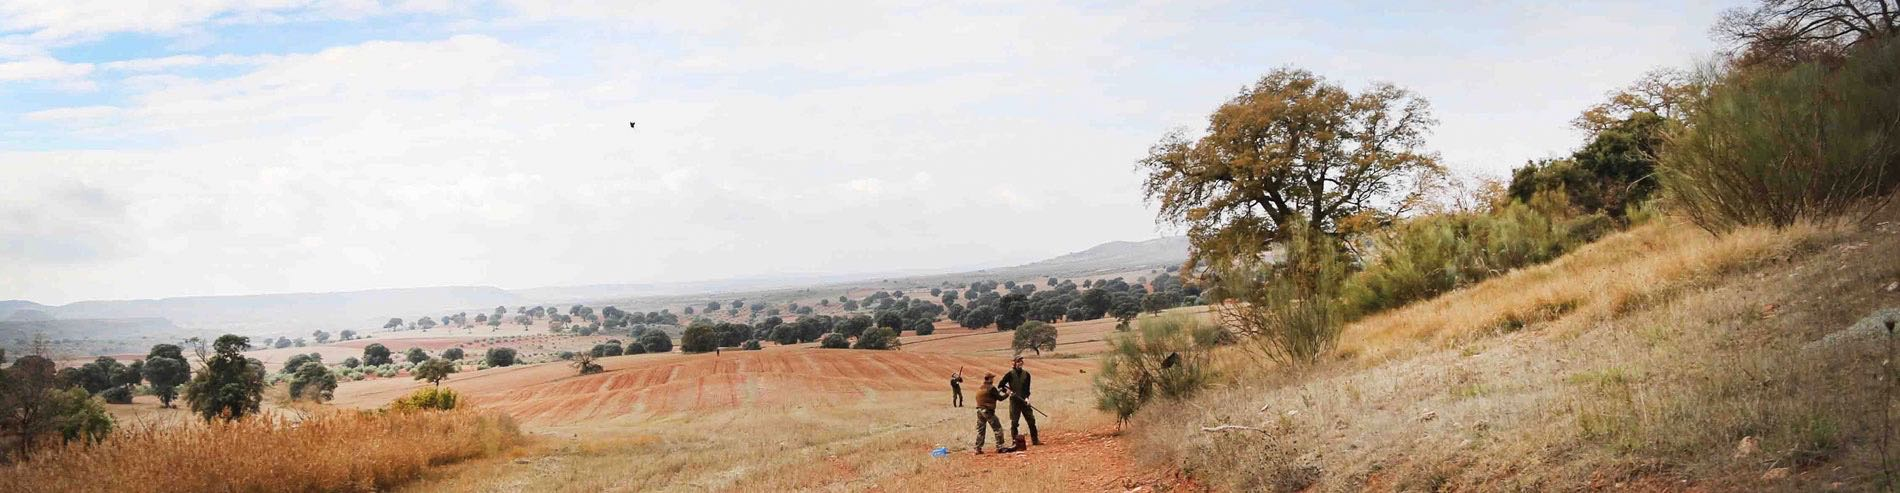 Driven high partridge shooting in Spain amongst dry olive tree & stubble fields, shooting team with